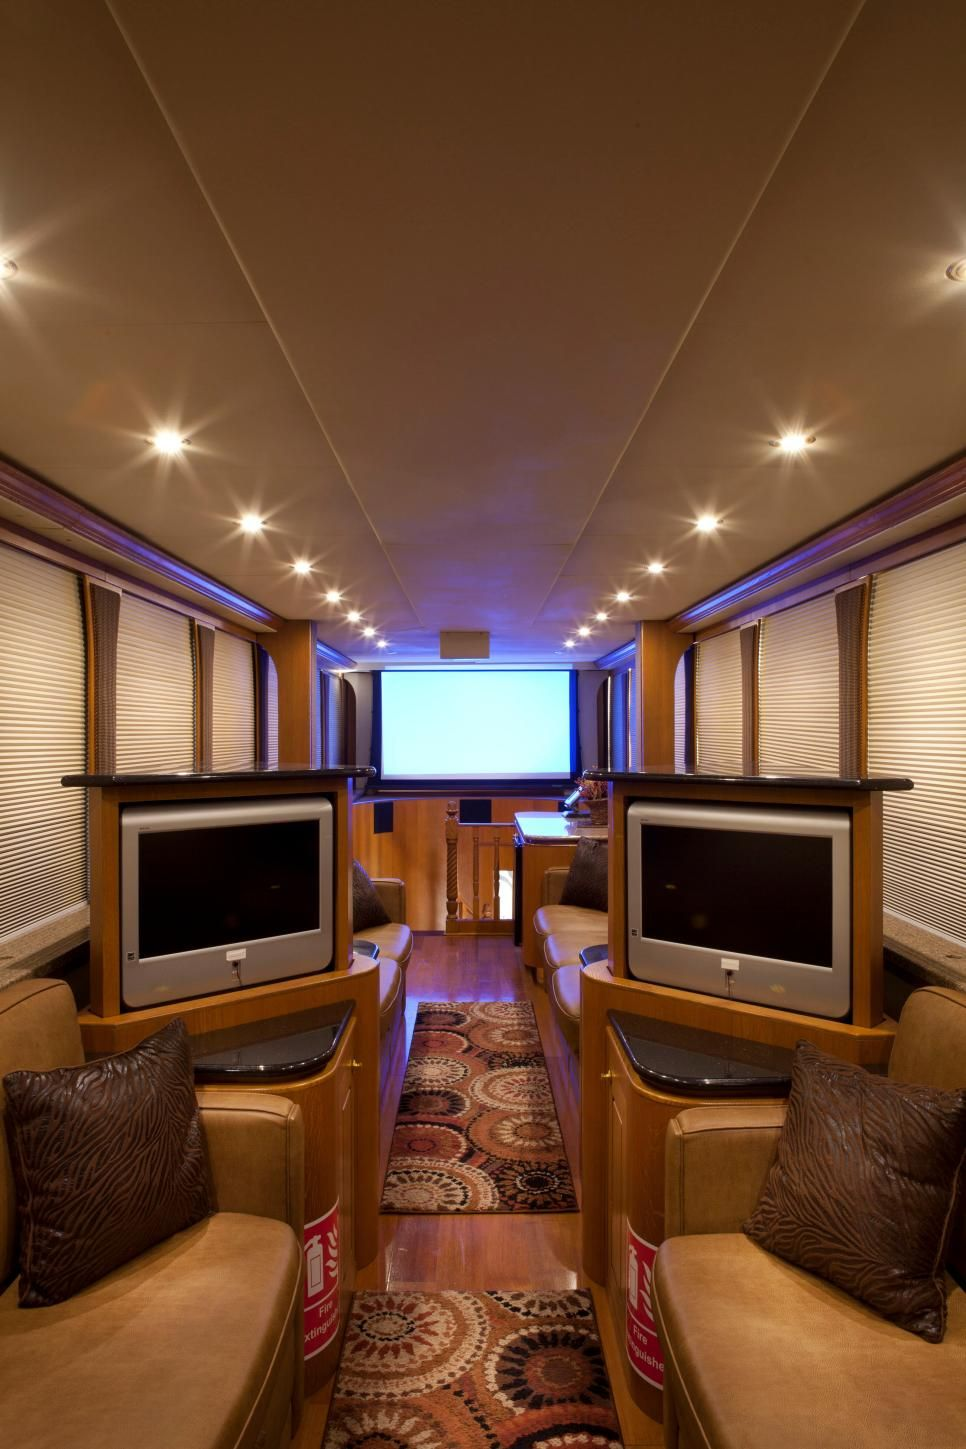 Take A Peek Inside The Most Luxurious Celebrity Tour Buses And Trailers Luxury Rv Motorhome Home Pictures